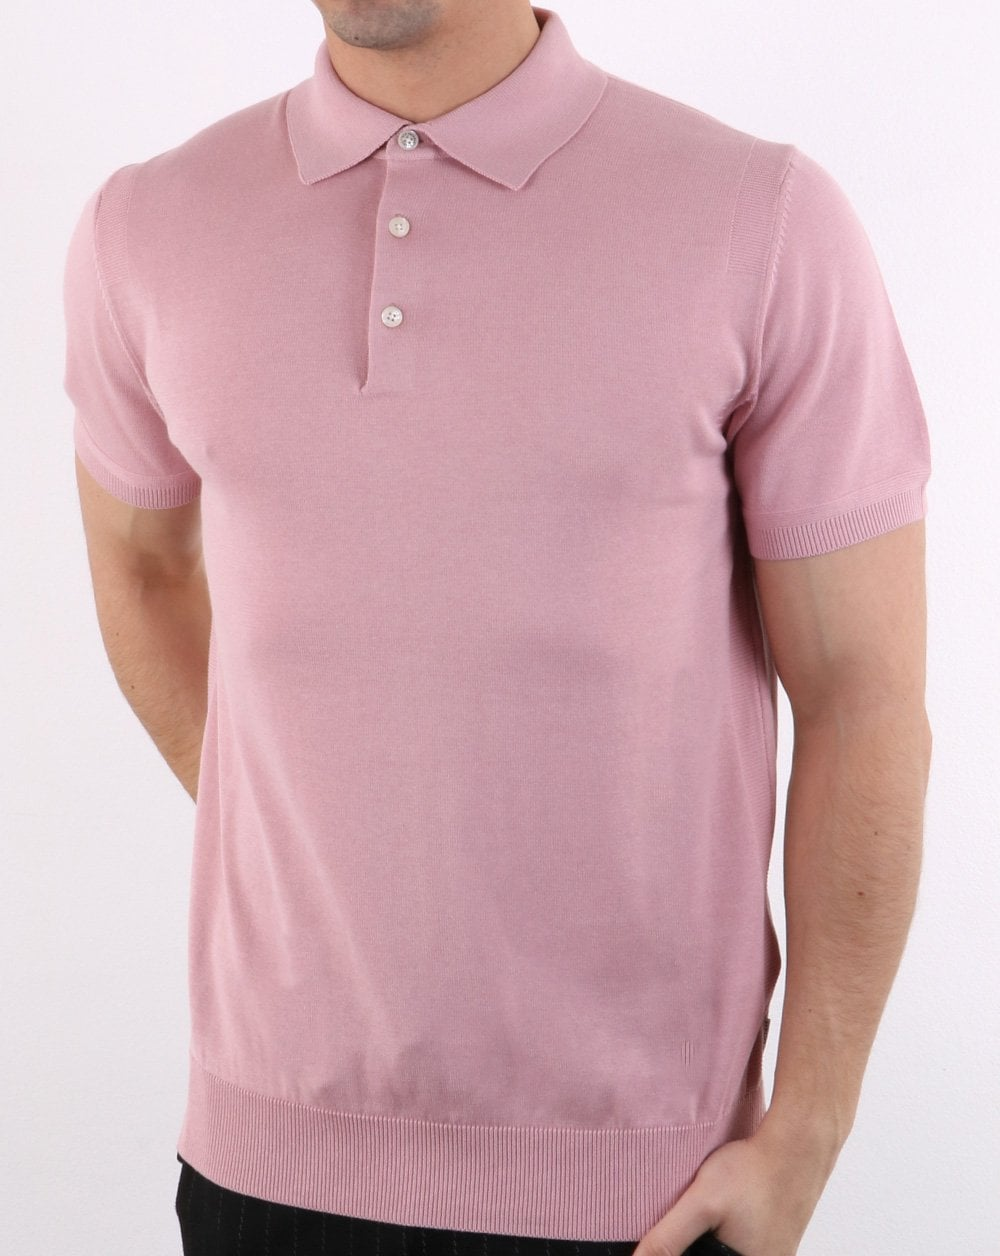 Ben Sherman Short Sleeve Knitted Polo In Light Pink Mens Polo Shirt